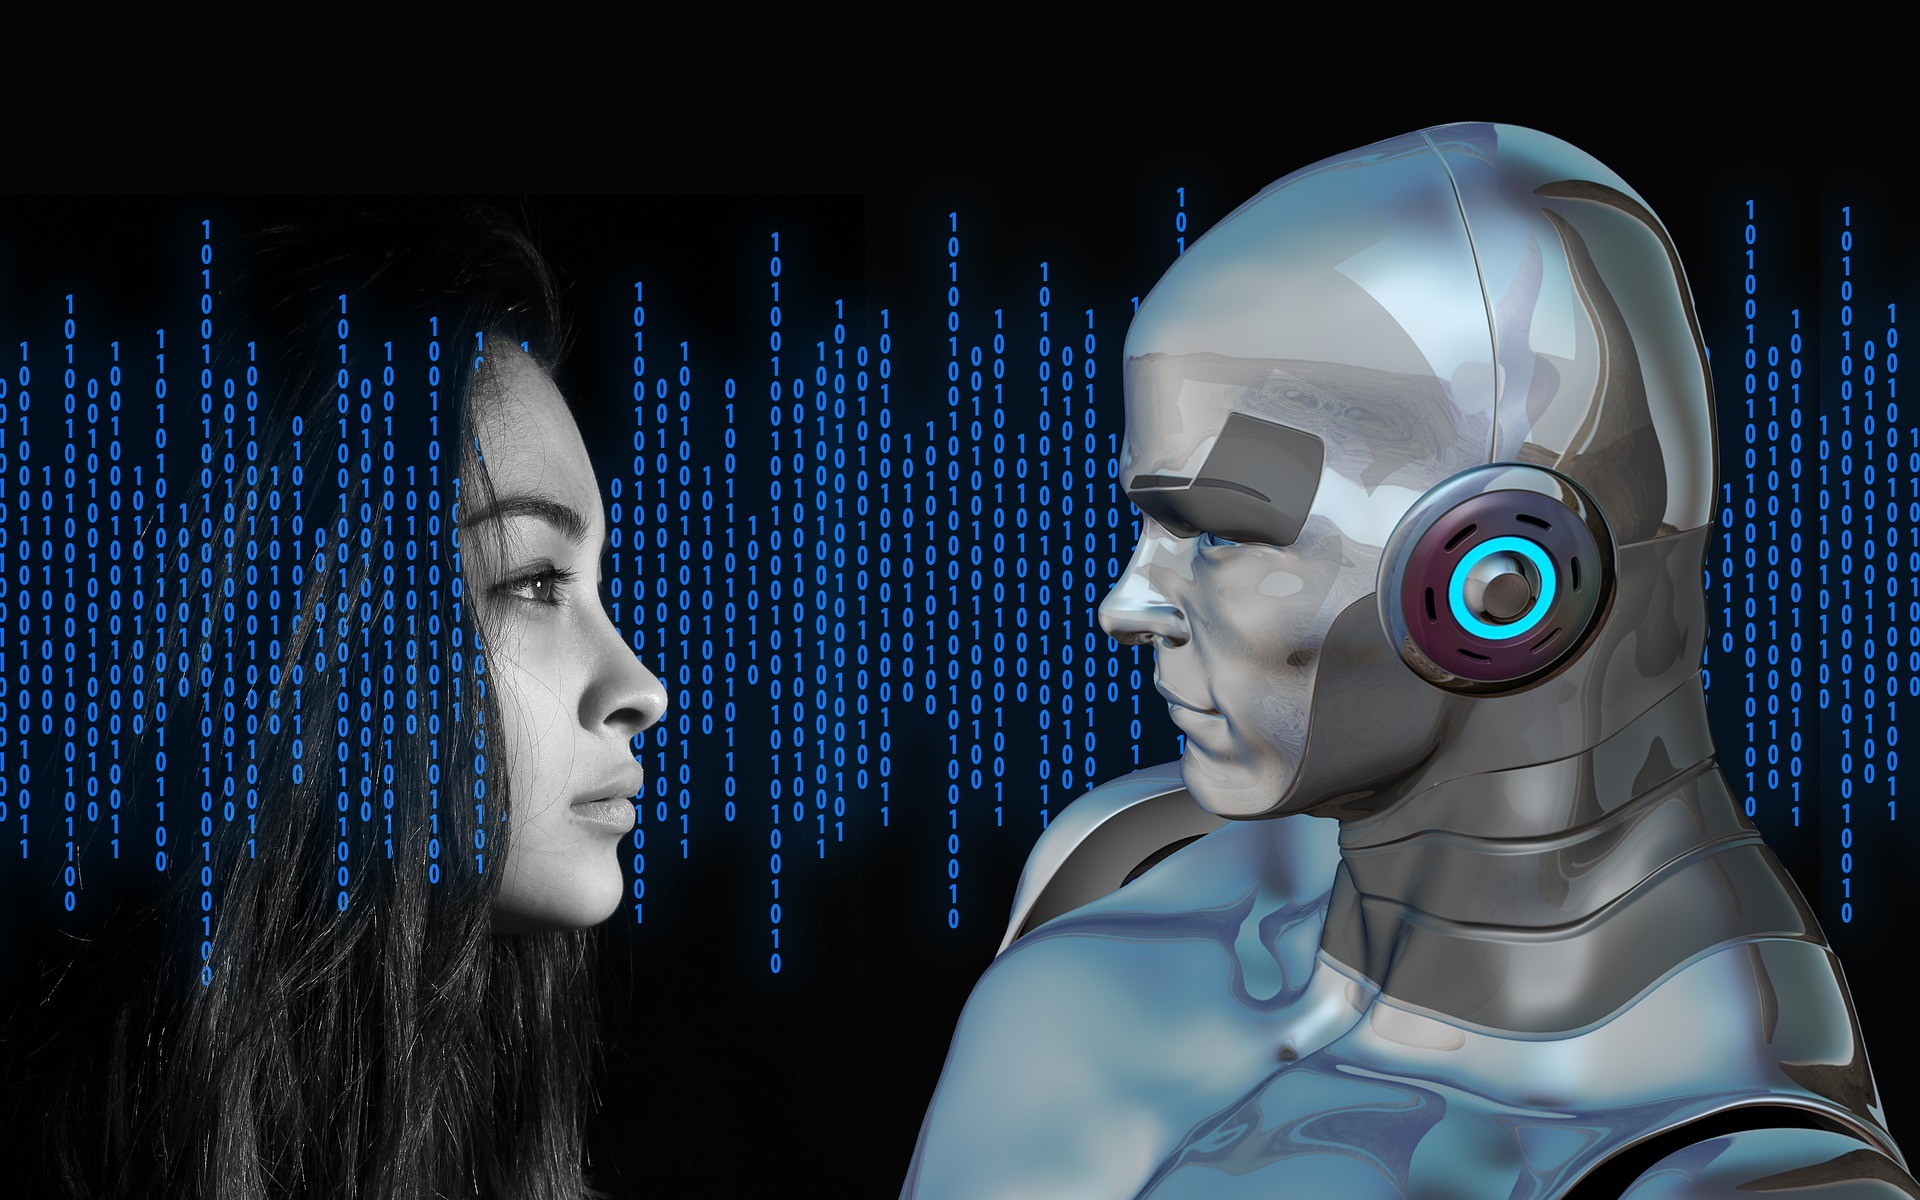 Artificial Intelligence applied to machine translation systems